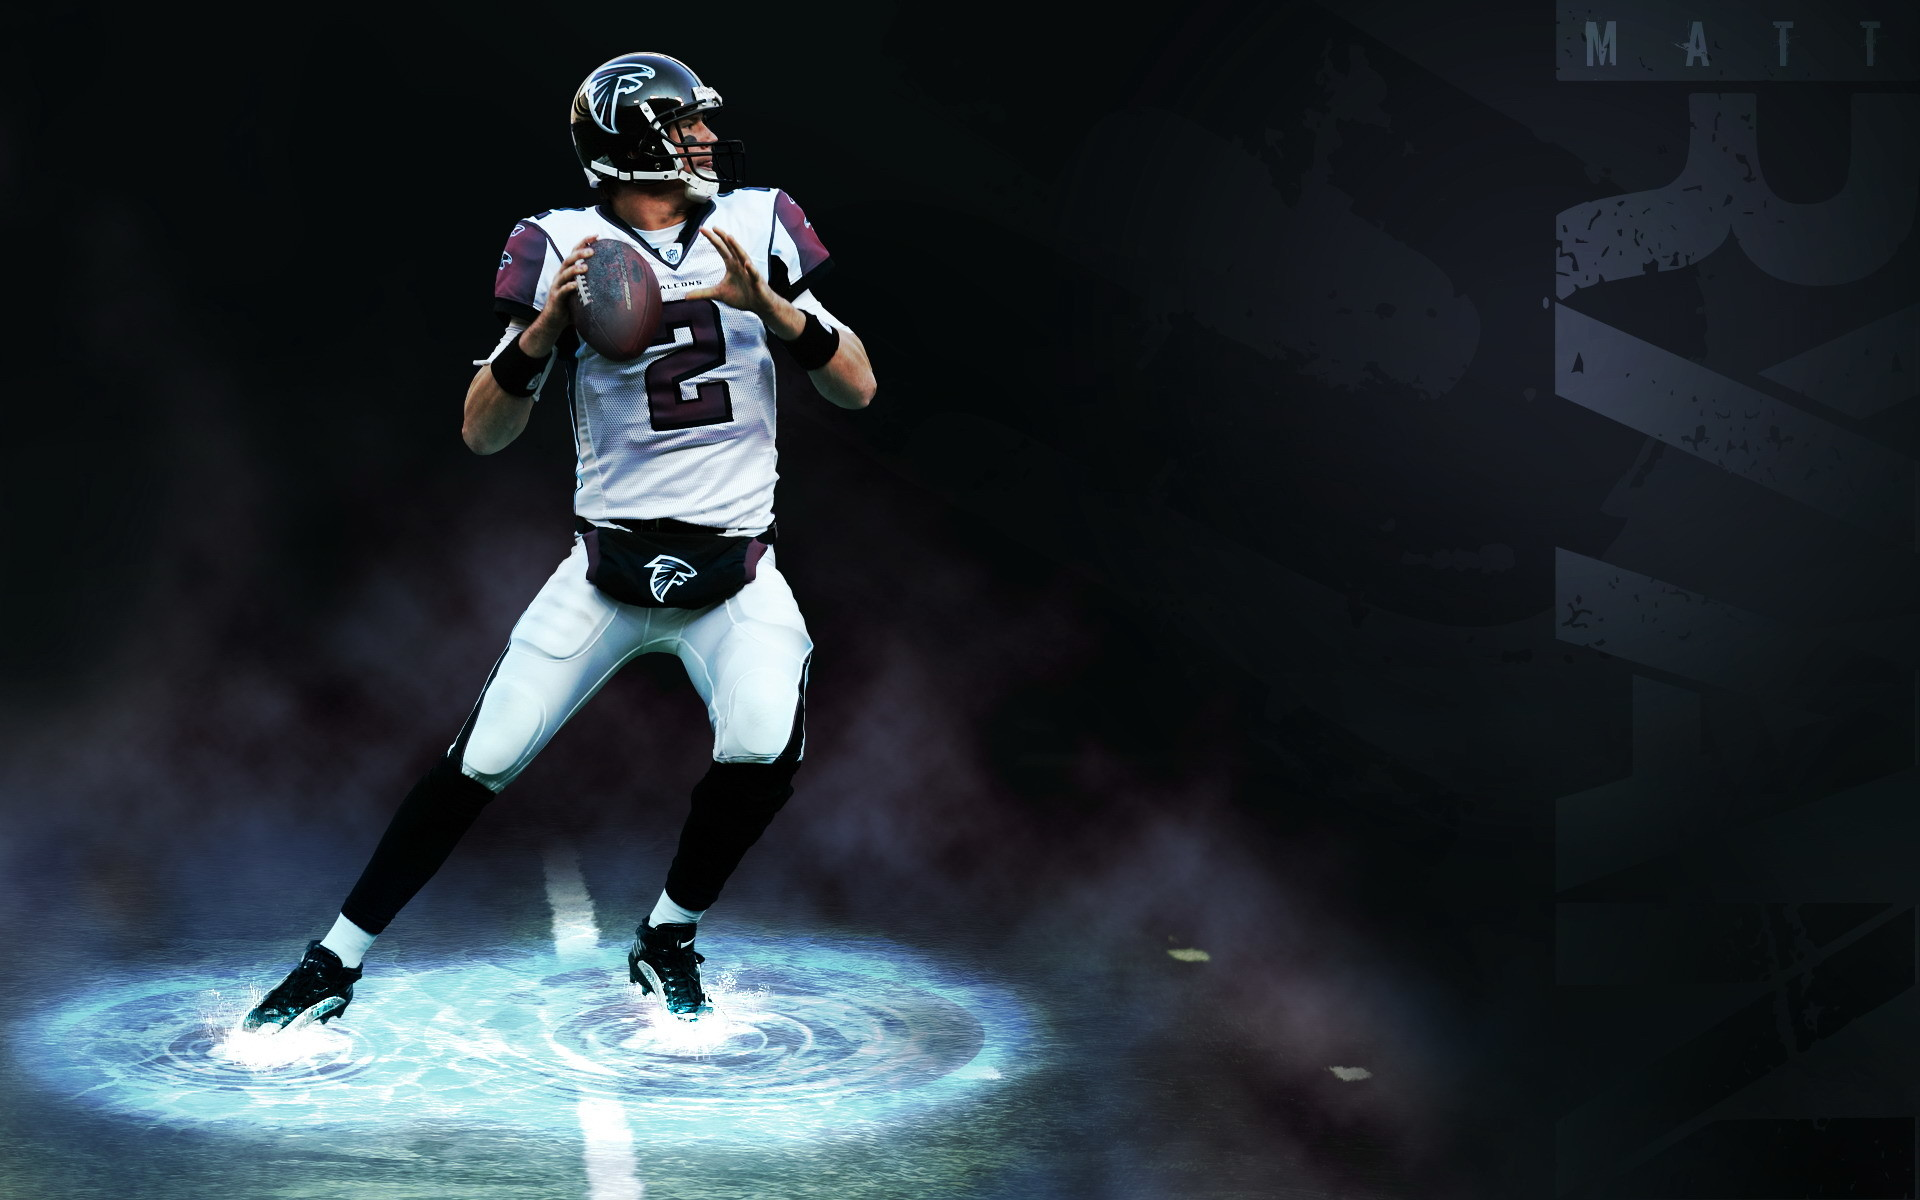 cool football wallpapers nfl (51+ images)